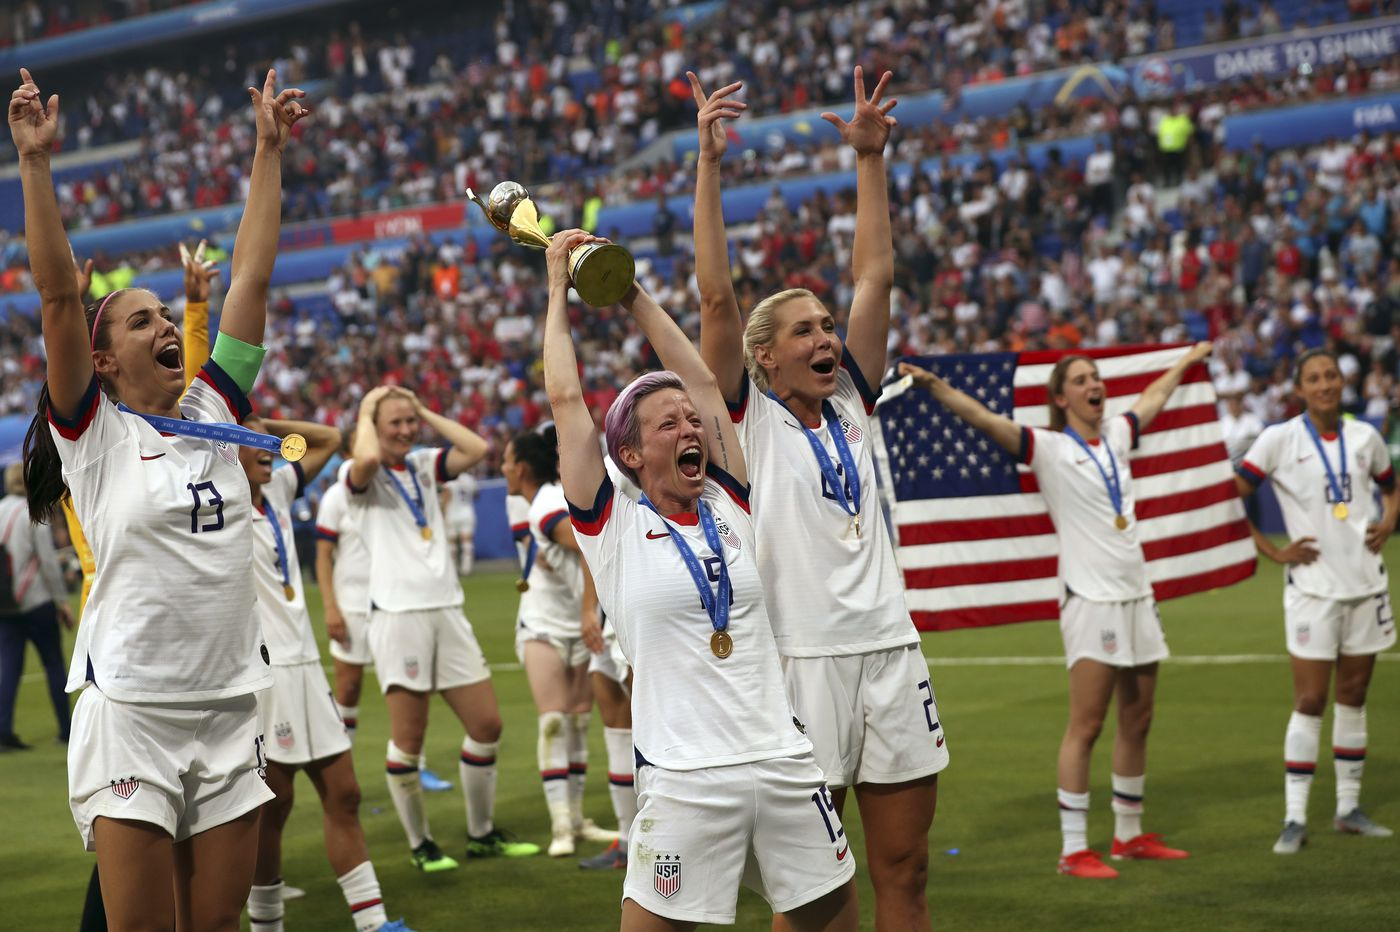 A stadium of soccer fans chanting 'Equal pay!' feels like a turning point. Will it be?